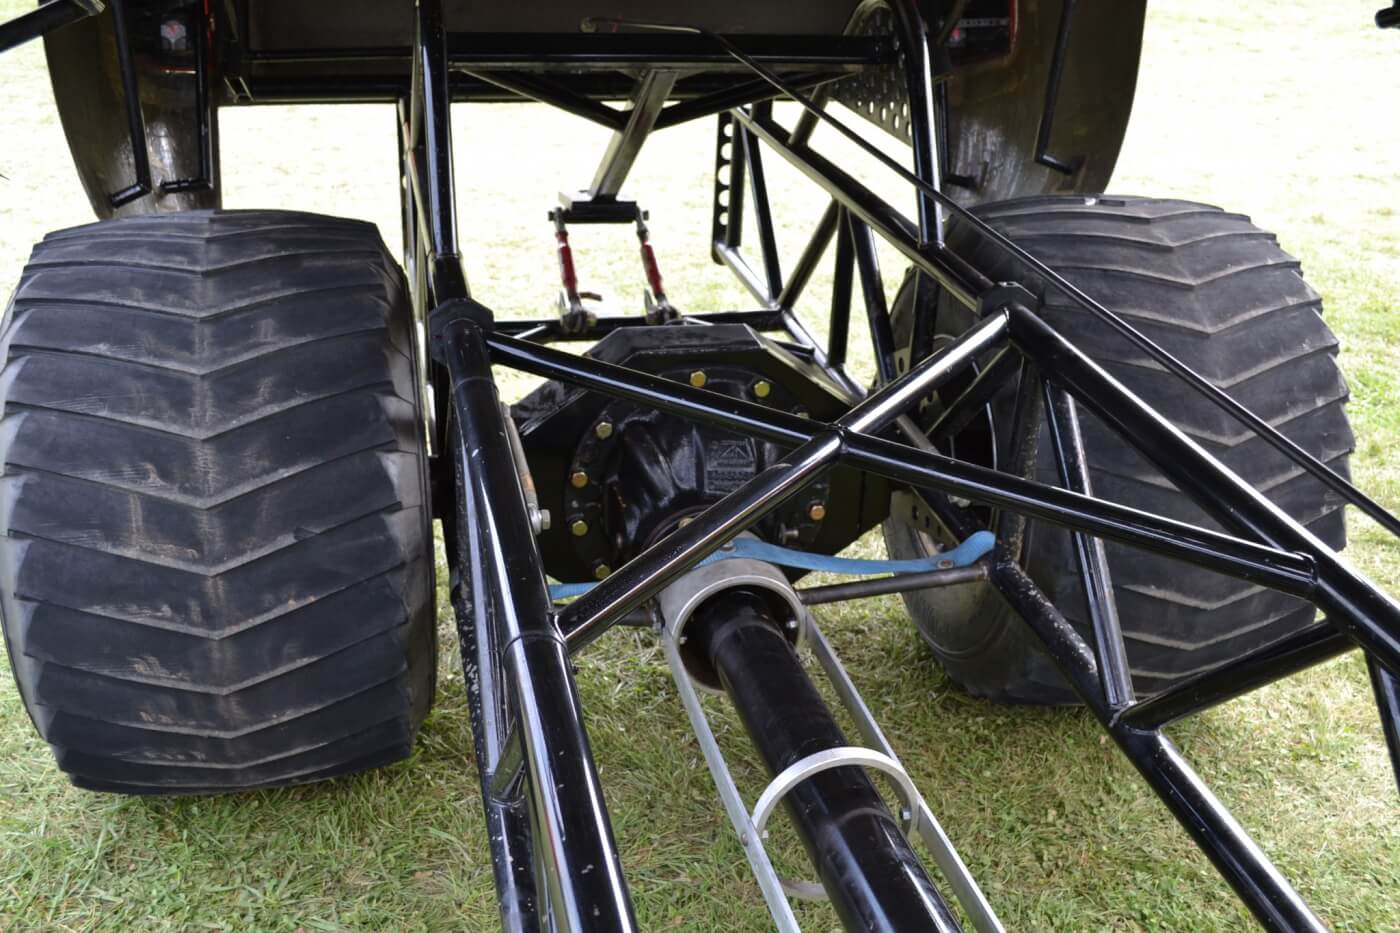 There's no suspension out back, just a SQHD axle that can handle the massive strain put on the rear end from a 40,000-lb. pulling sled. The axle in the rear runs 6.20 gearing, as does the Rockwell up front.